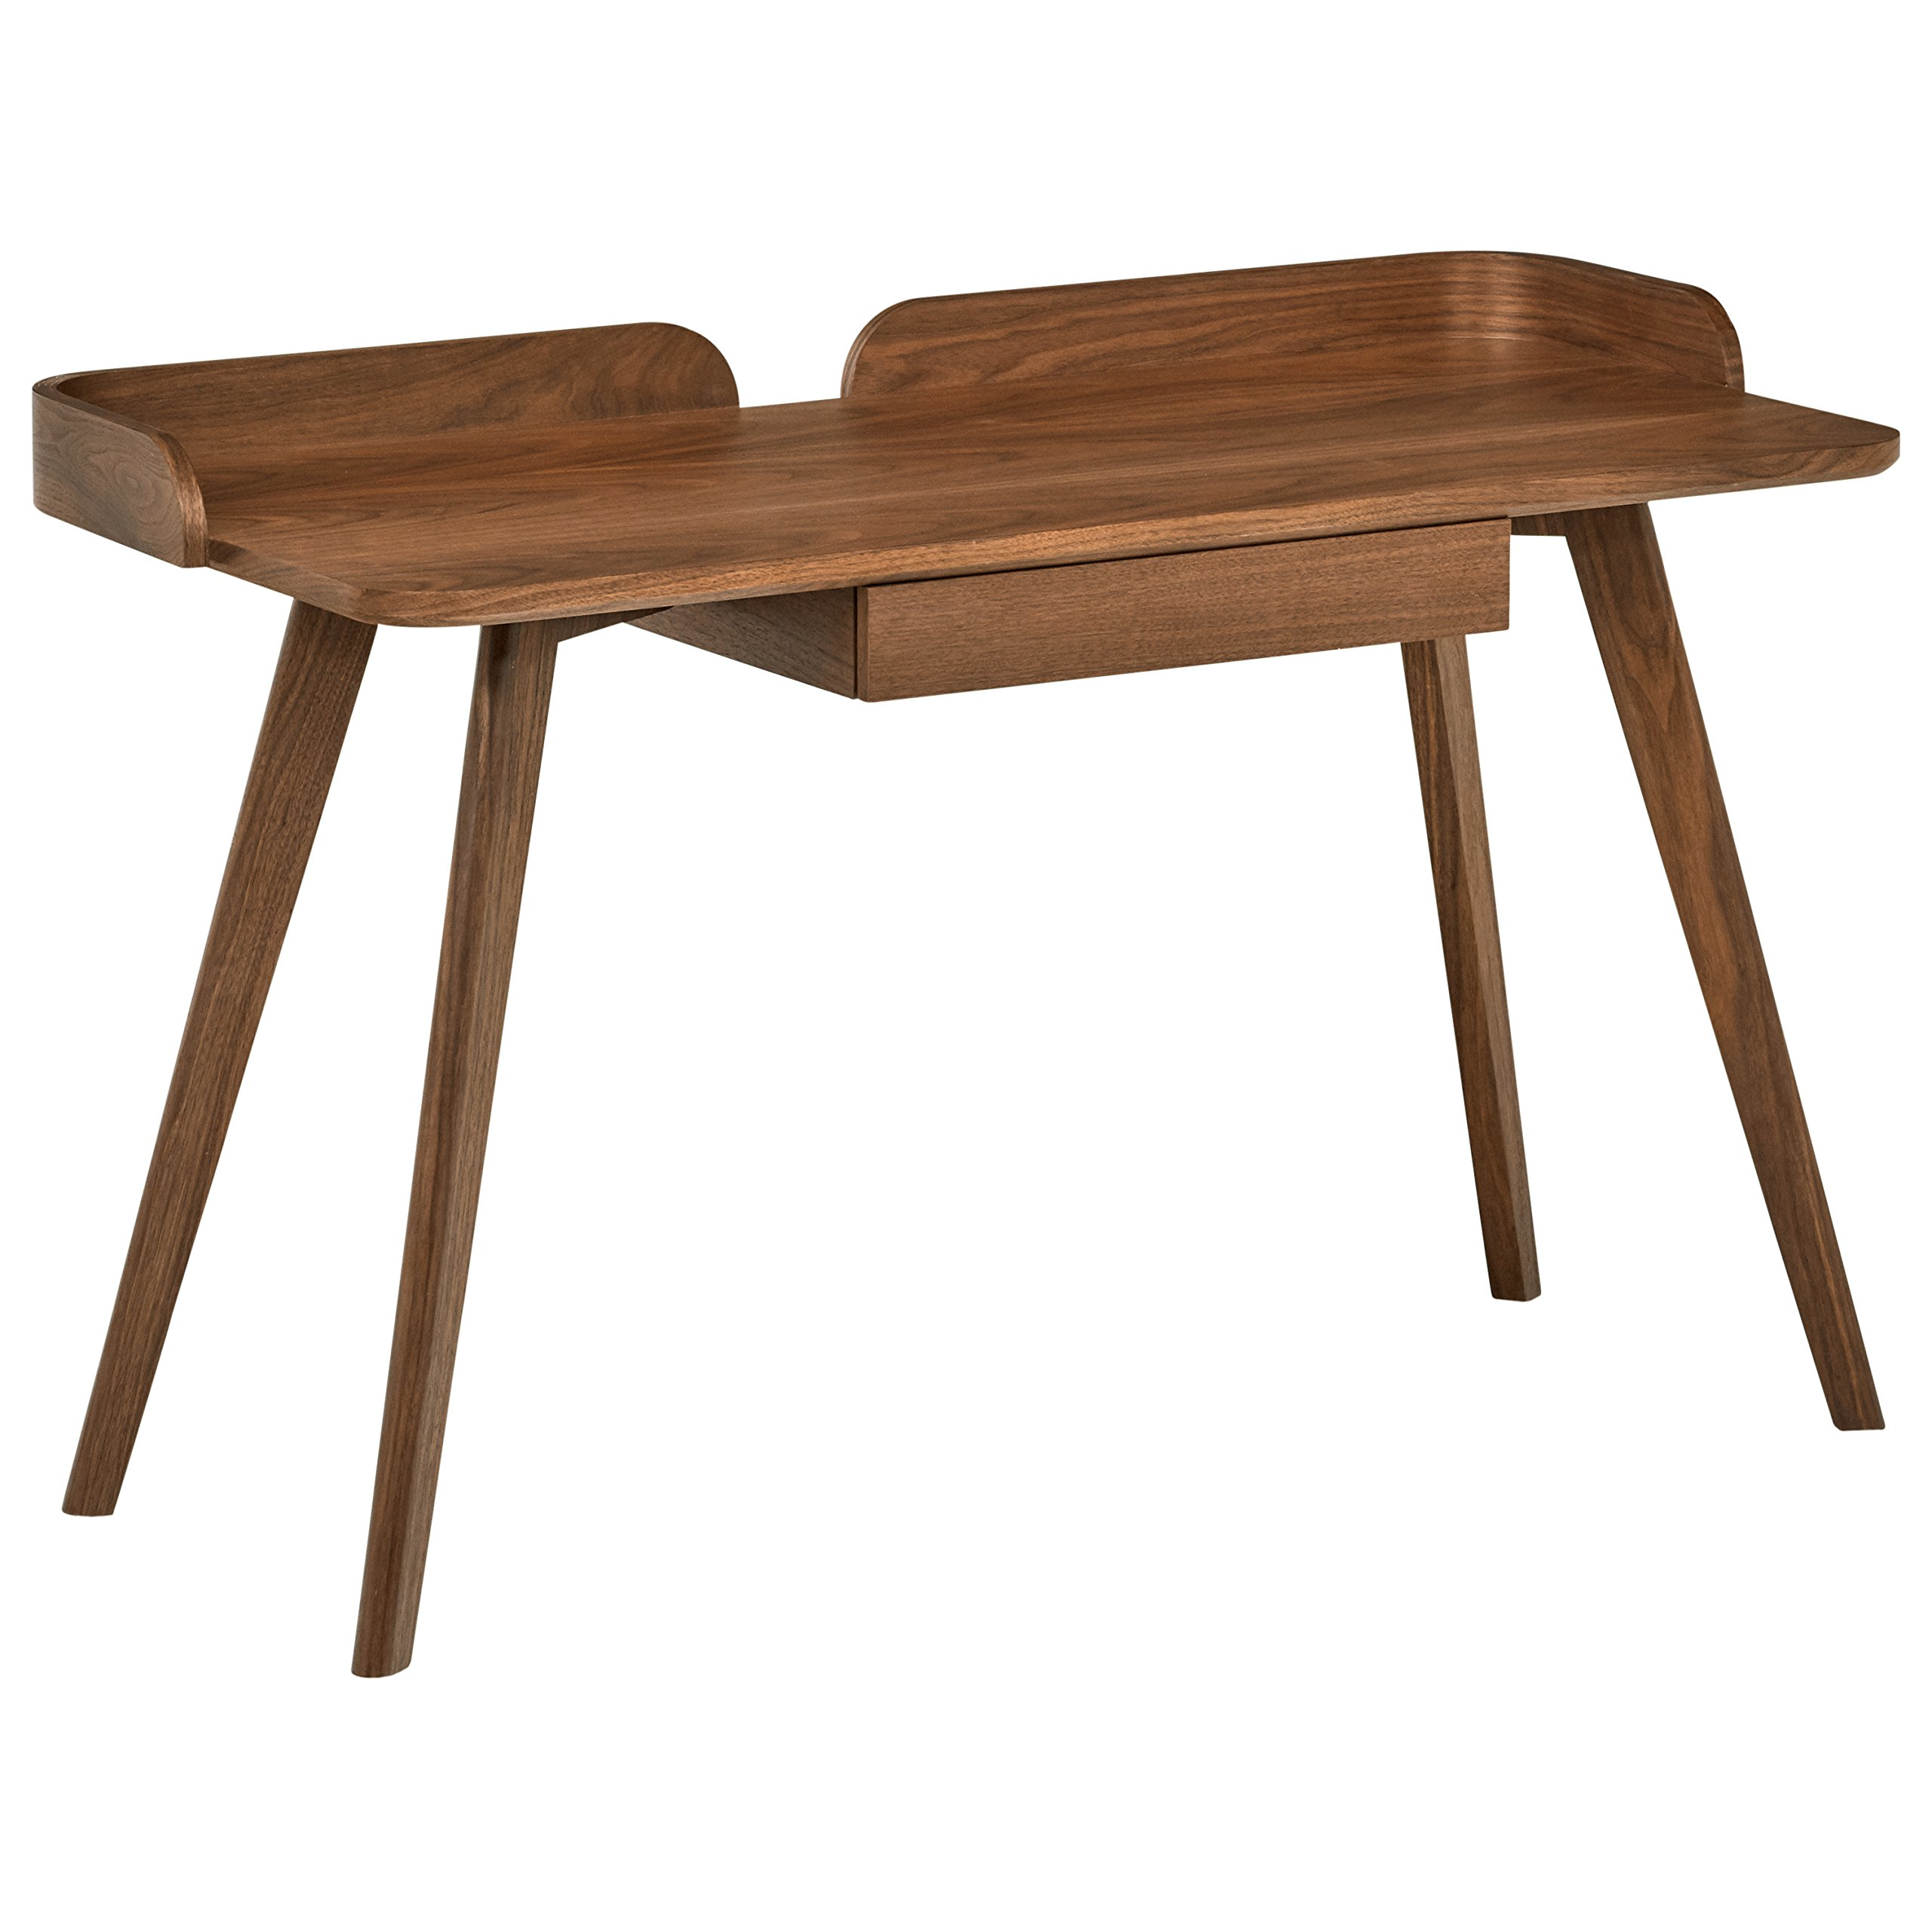 Rivet Mid-Century Curved Wood Table Home Office Computer Desk, 48.4''L, Walnut by Rivet